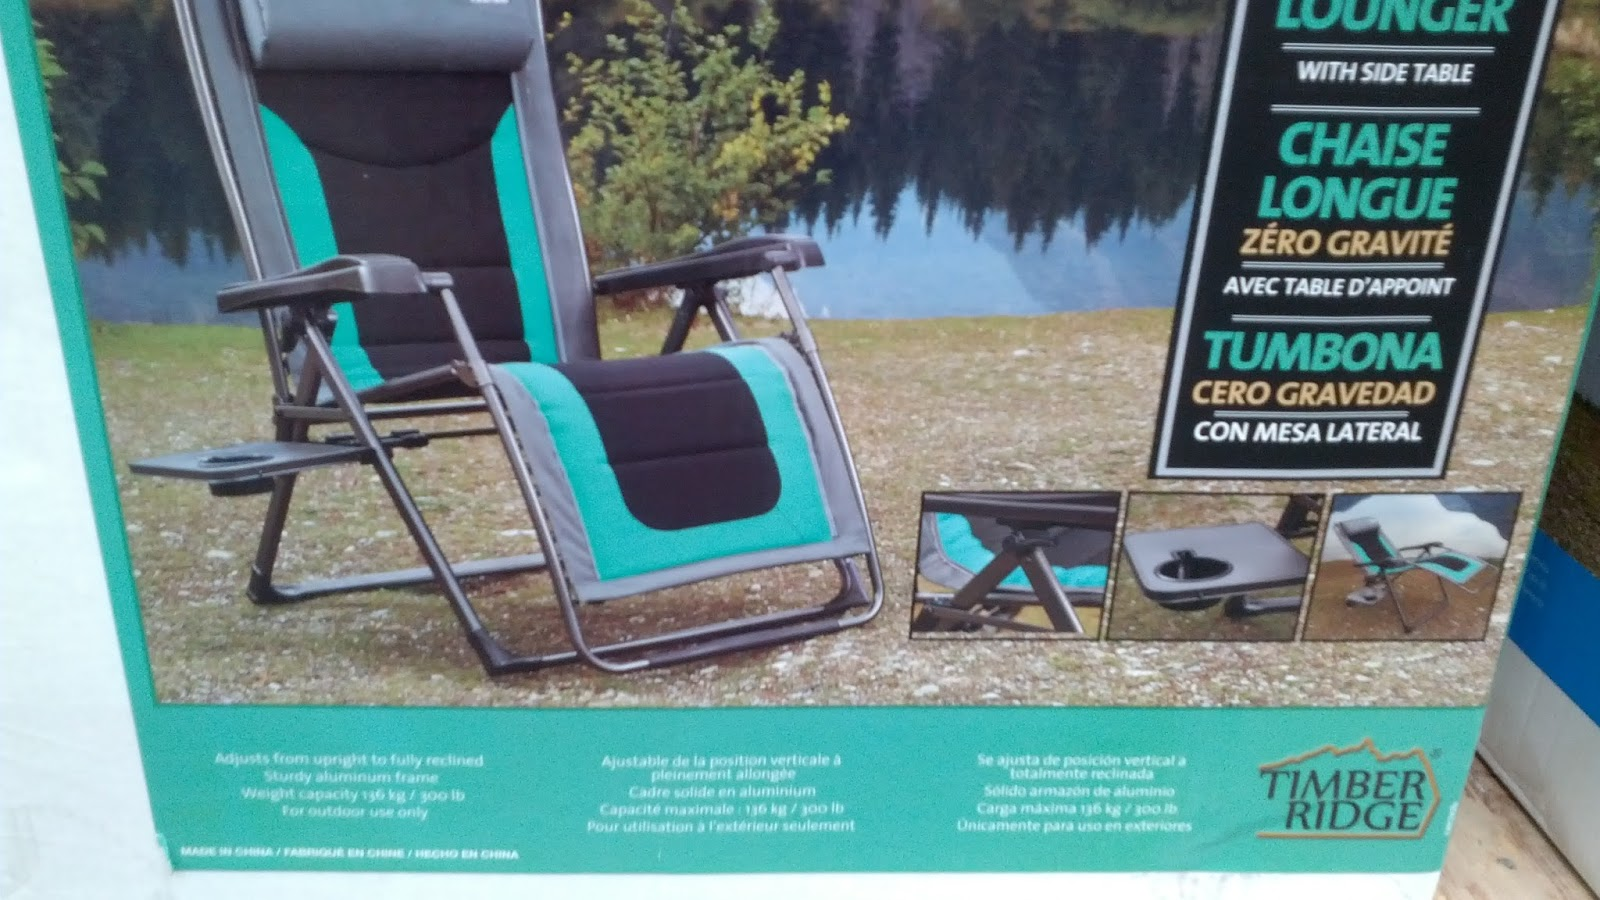 Costco 918343 - Timber Ridge Zero Gravity Chair comes with side table and fully reclines